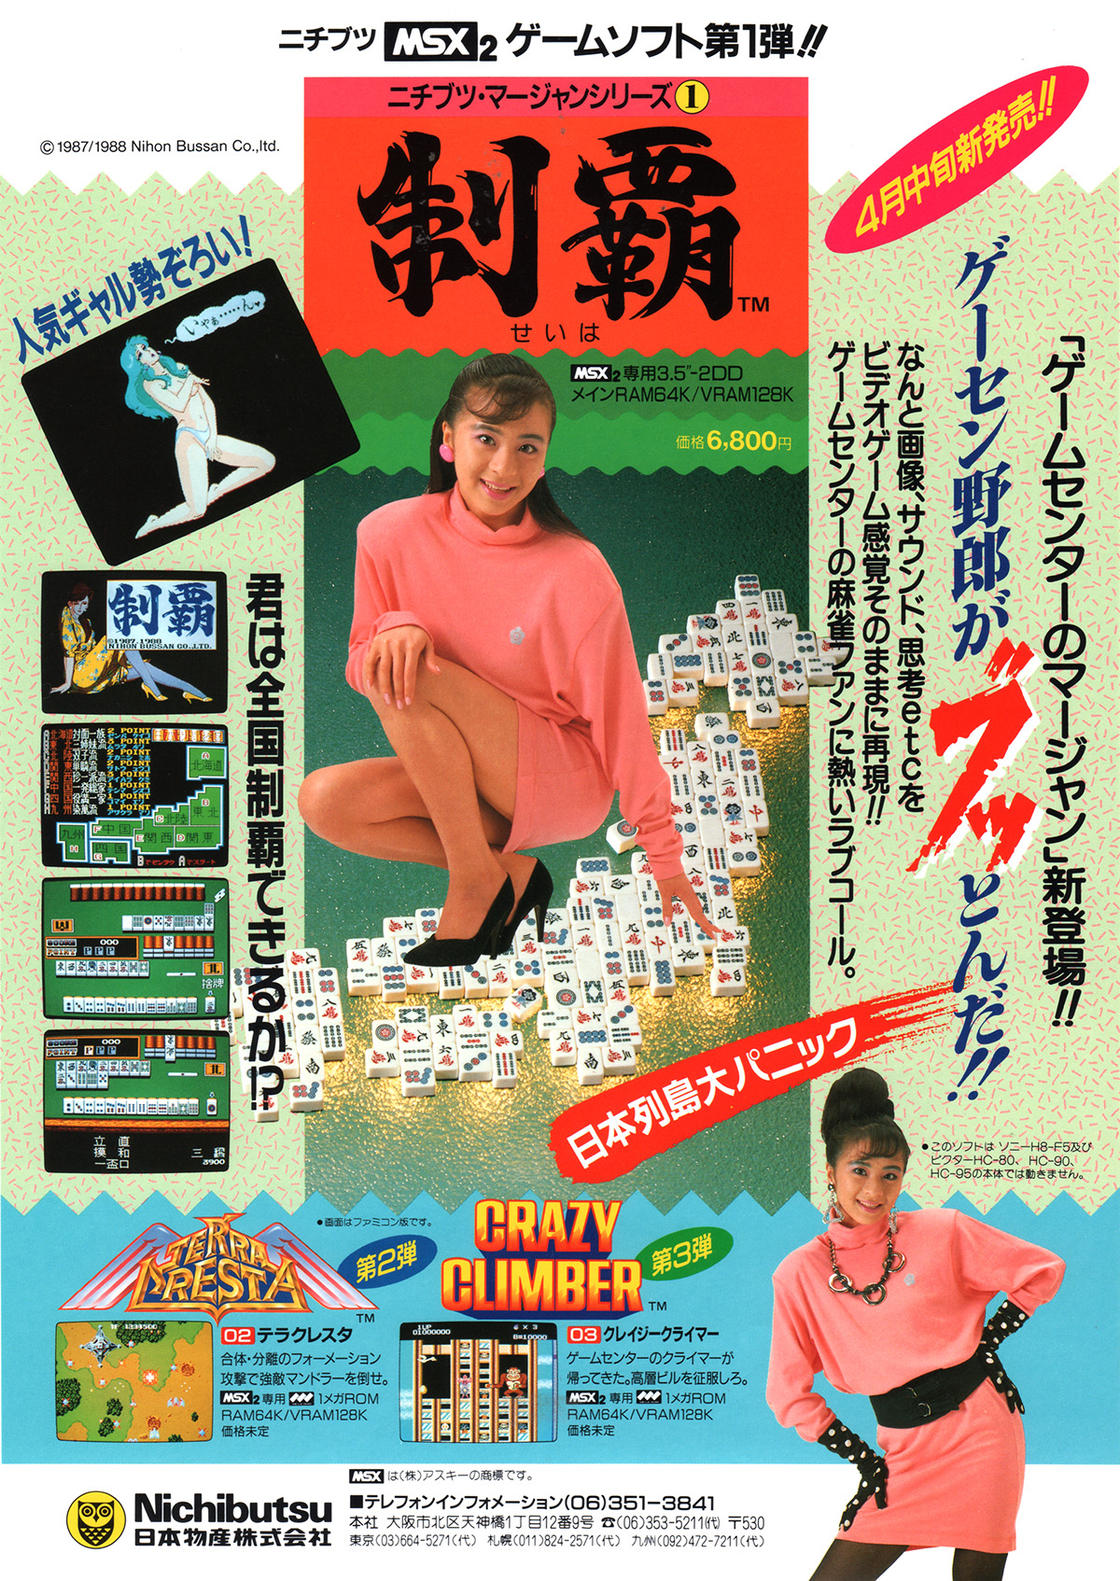 publicites-japonaises-jeux-video-1980-16.jpg